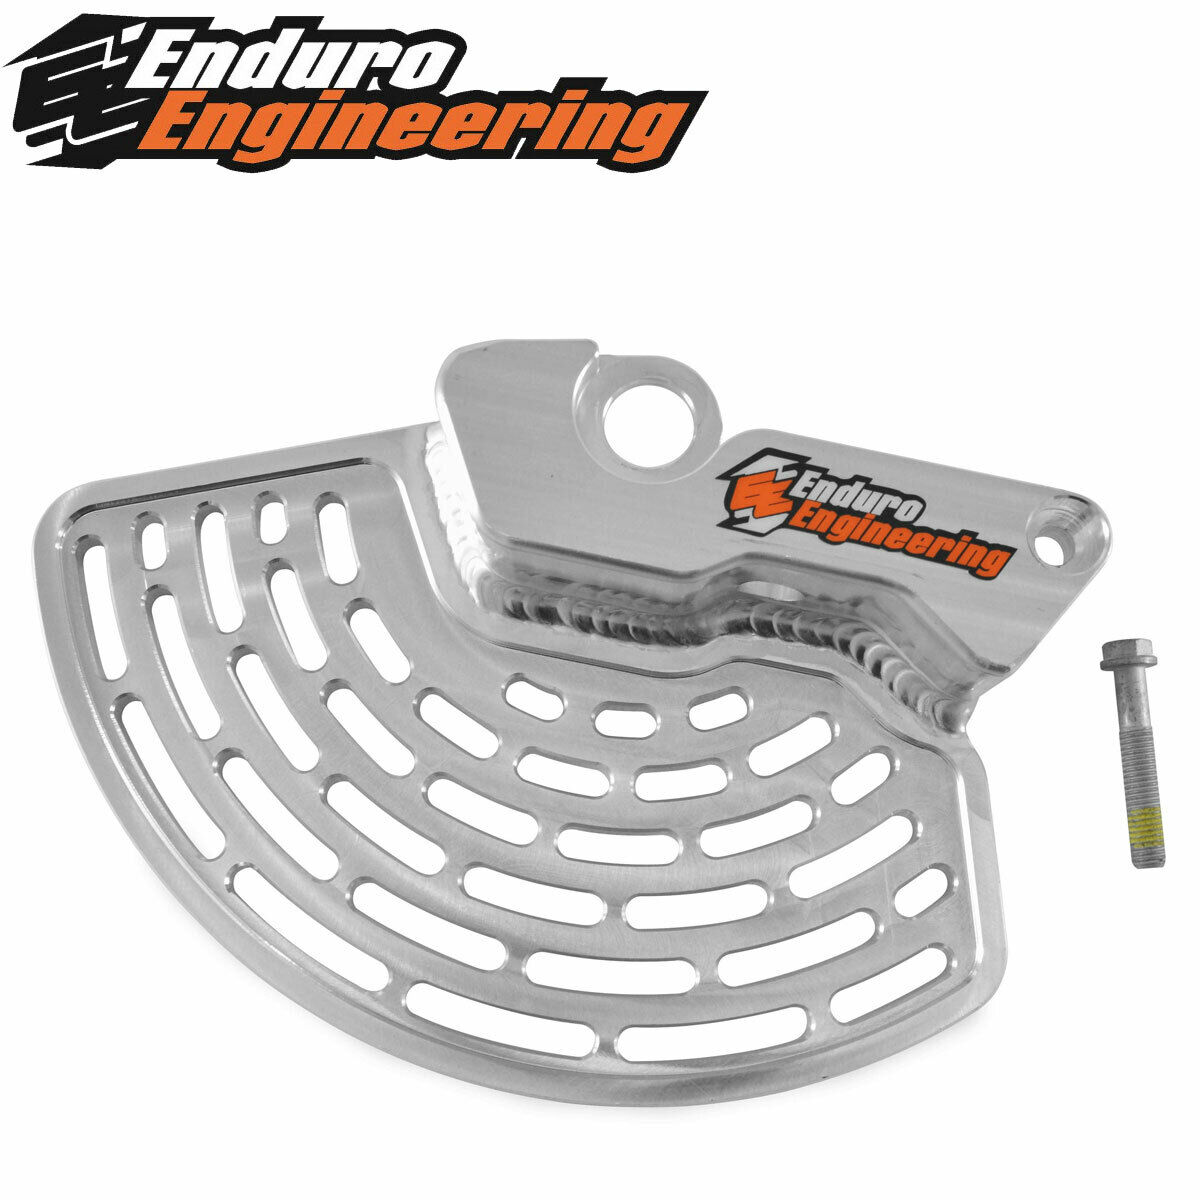 Enduro Engineering Front Brake Disc Rotor Guard 14-19 Yamaha 250 450 YZF YZFX